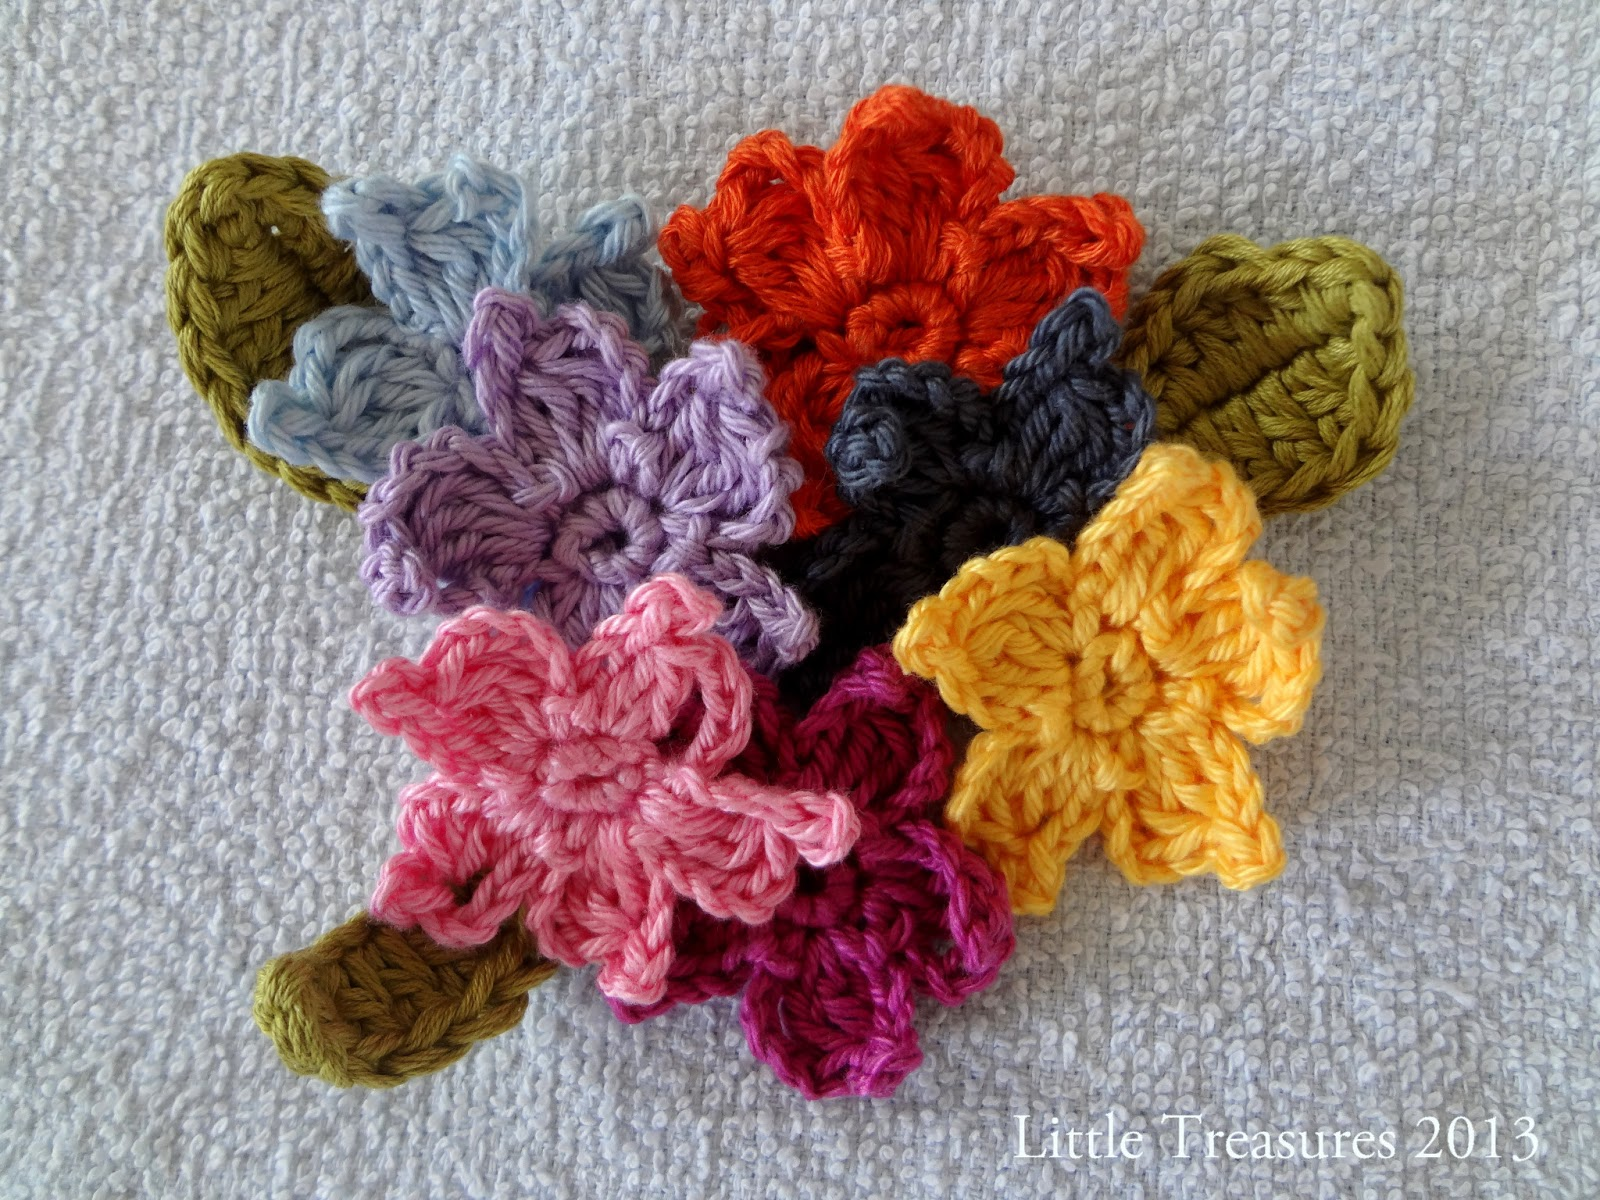 Crochet Tutorial : Little Treasures: Adenium - free crochet flower tutorial